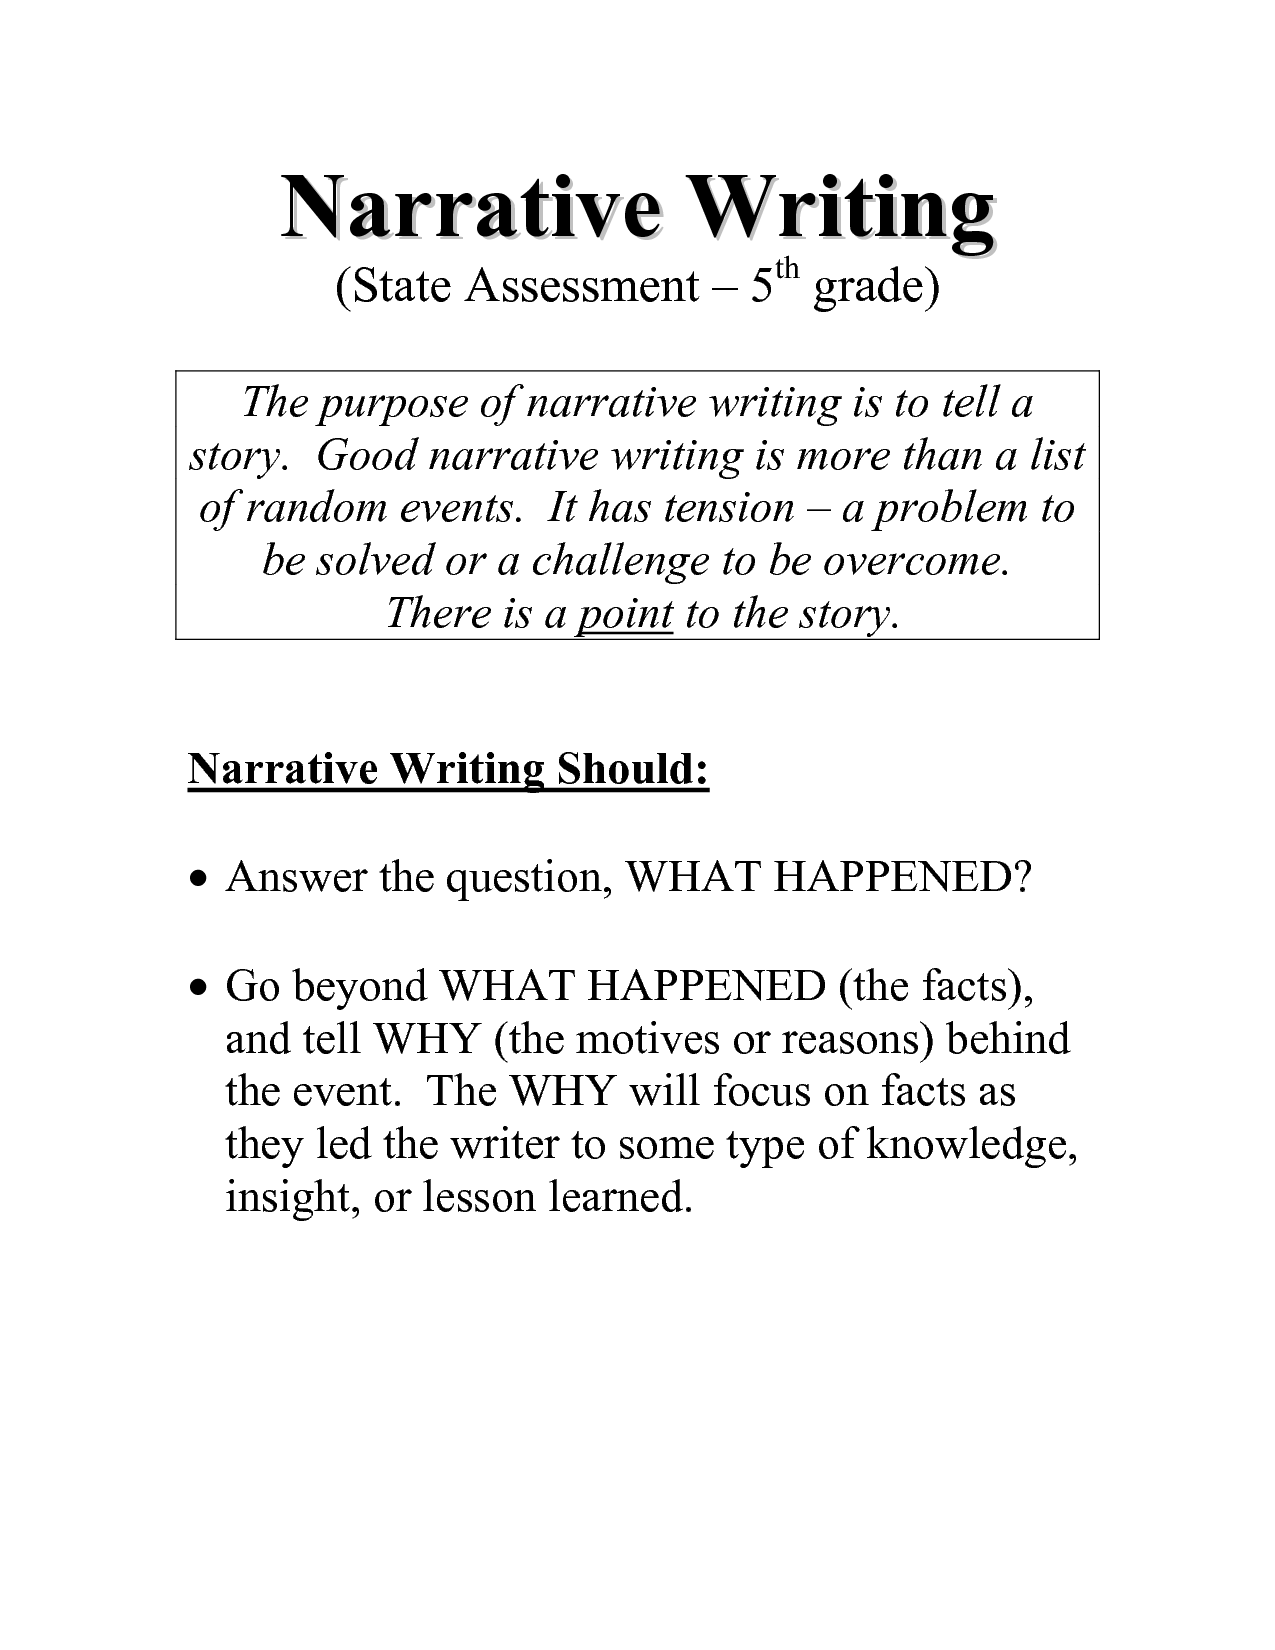 001 Narrative Essay Prompts Example Fascinating Writing 5th Grade Common Core 4th Full